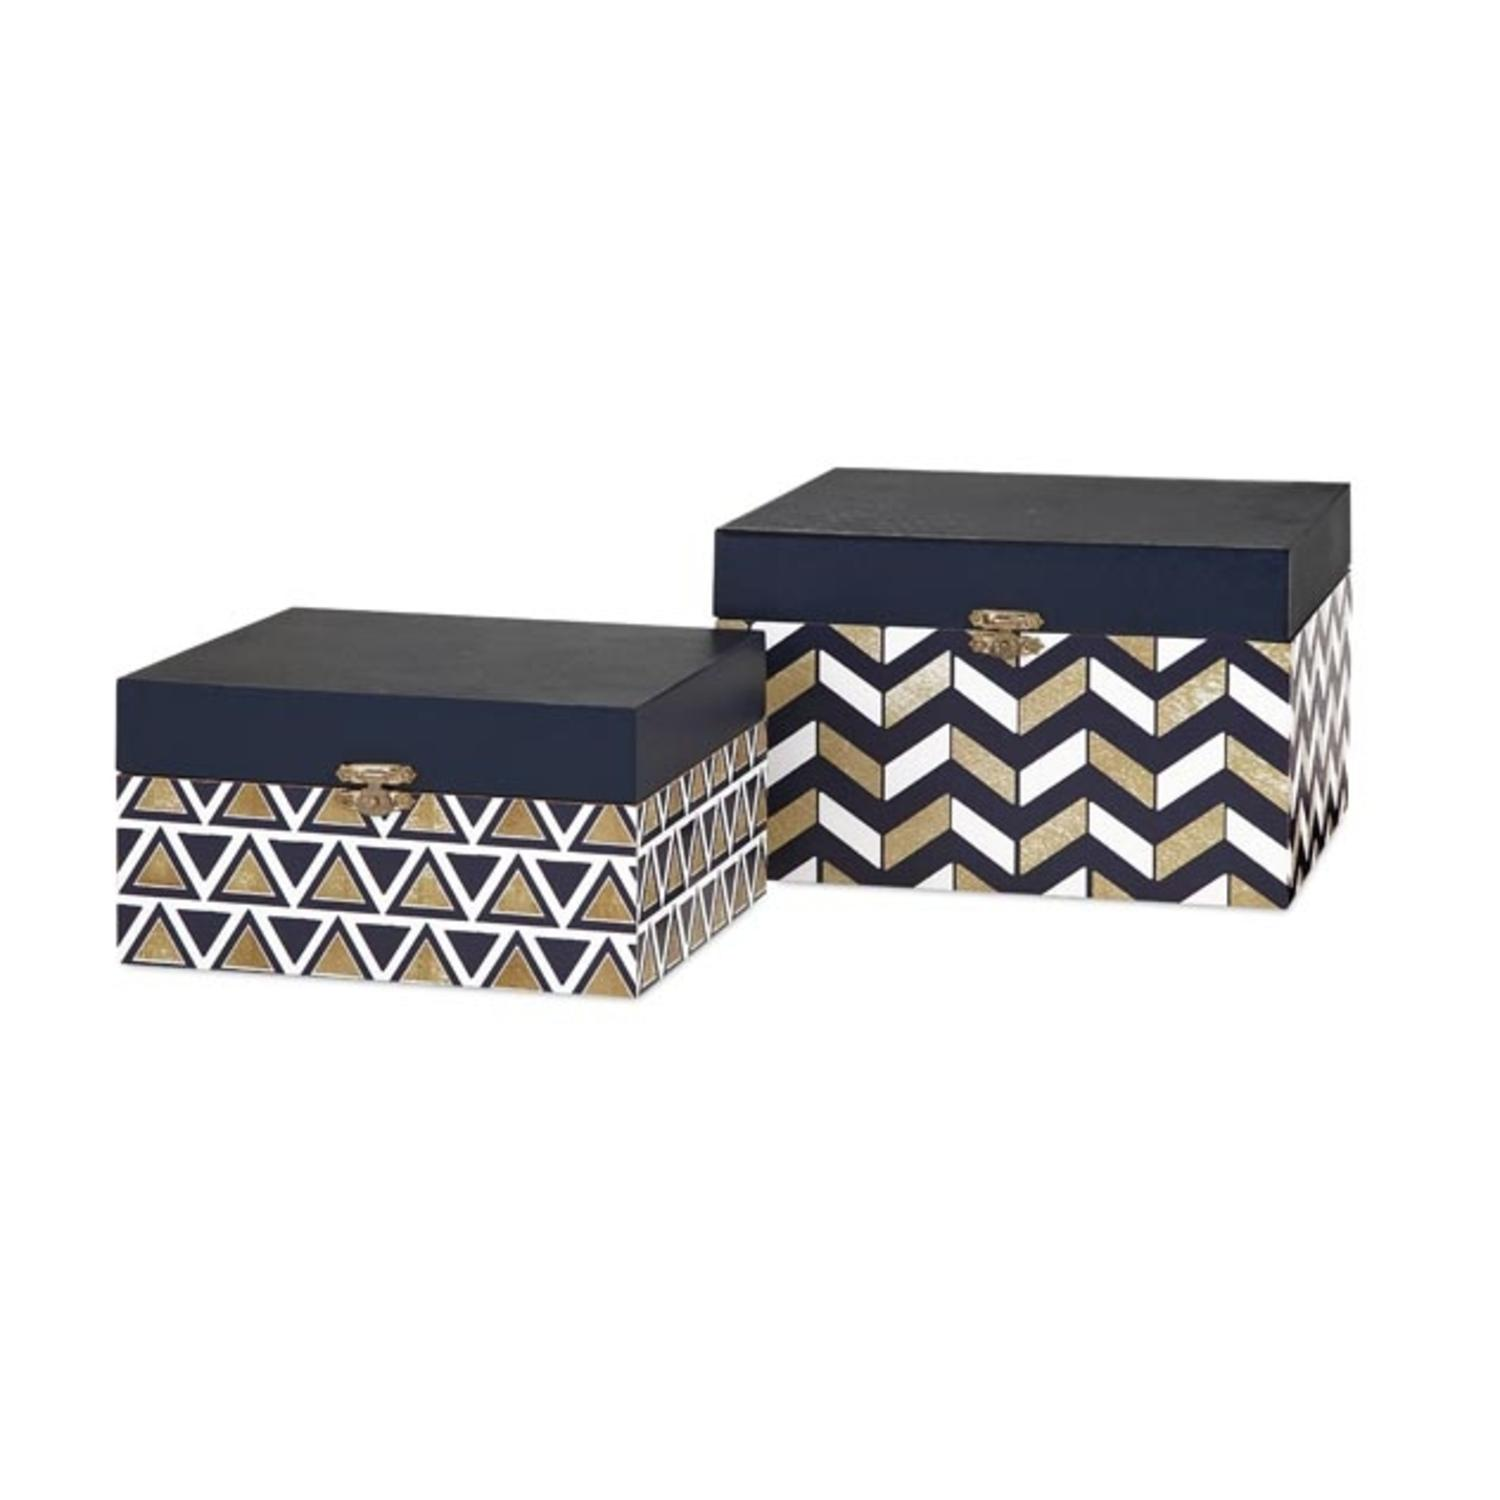 Set Of 2 Navy Blue Metallic Gold And Classic White Chevron Patterned  Decorative Wooden Storage Boxes